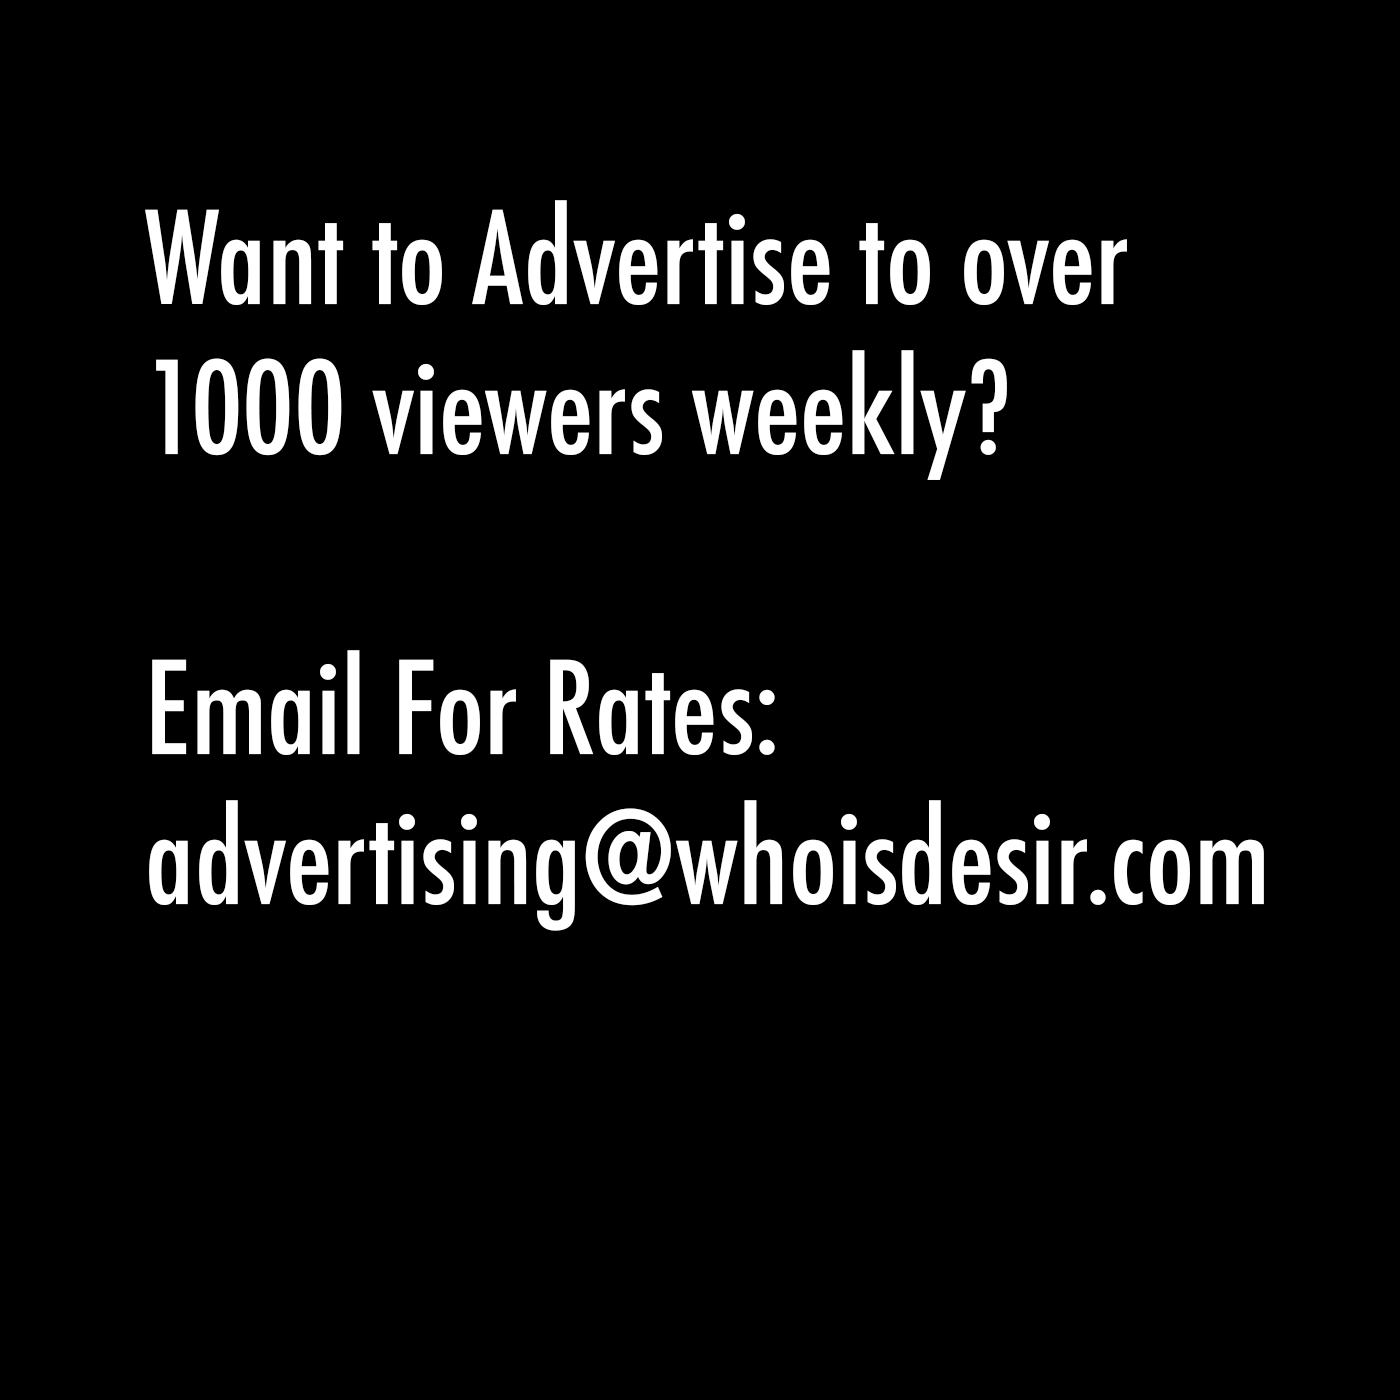 Advertising with WhoIsDésir - The Lifestyle Connoisseur